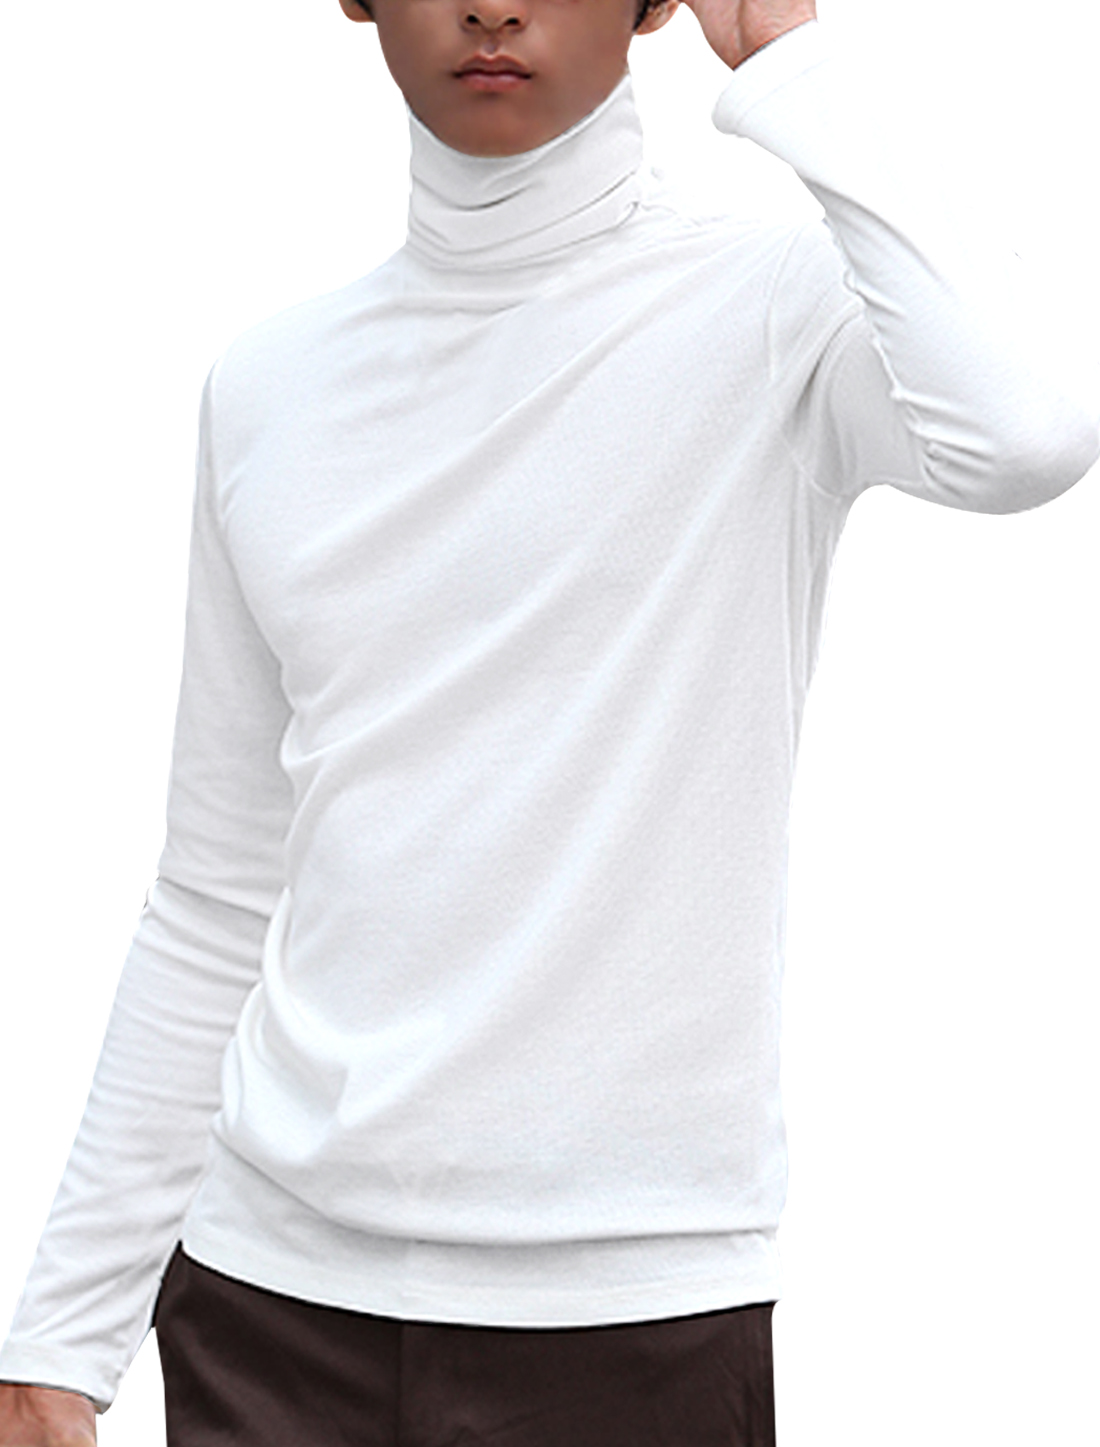 Men White Turtle Neck Long Sleeve Solid Color Stretchy Casual Top Shirt S